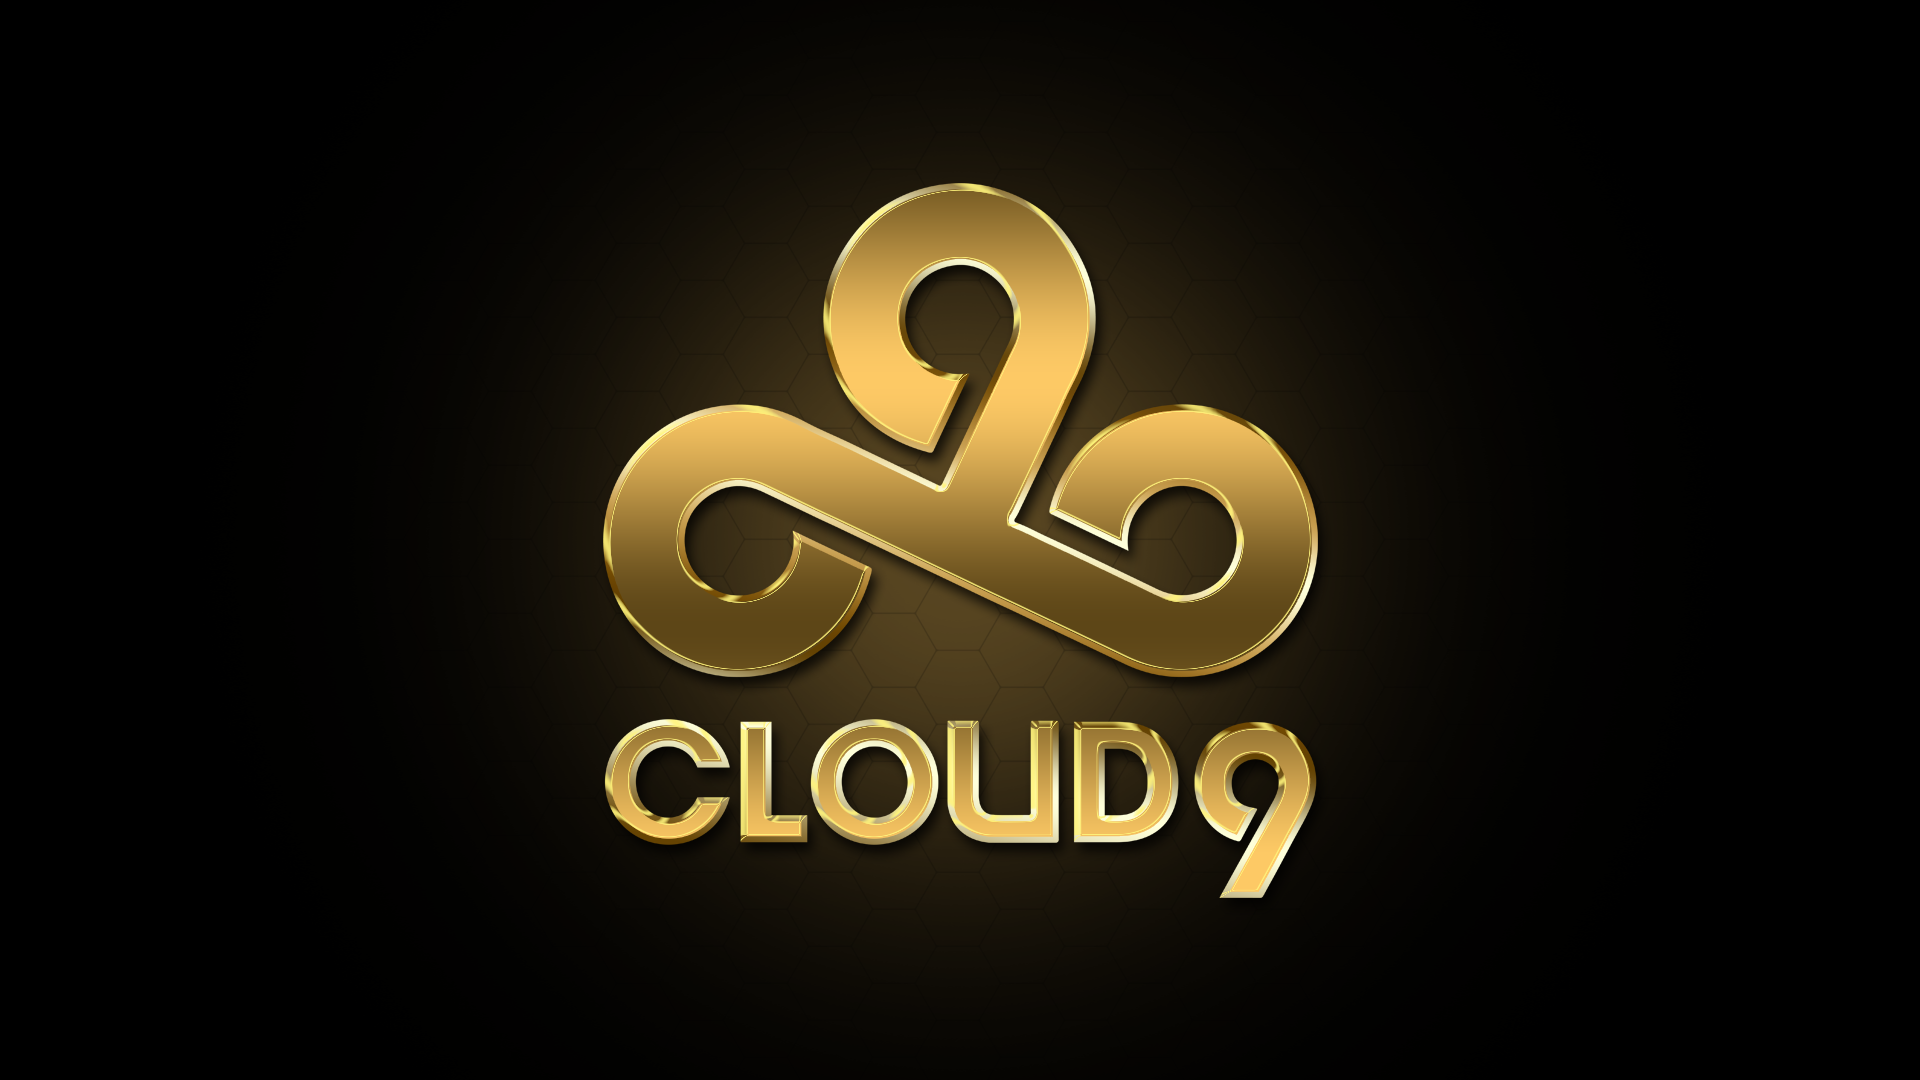 cloud9 gold csgo wallpapers and backgrounds